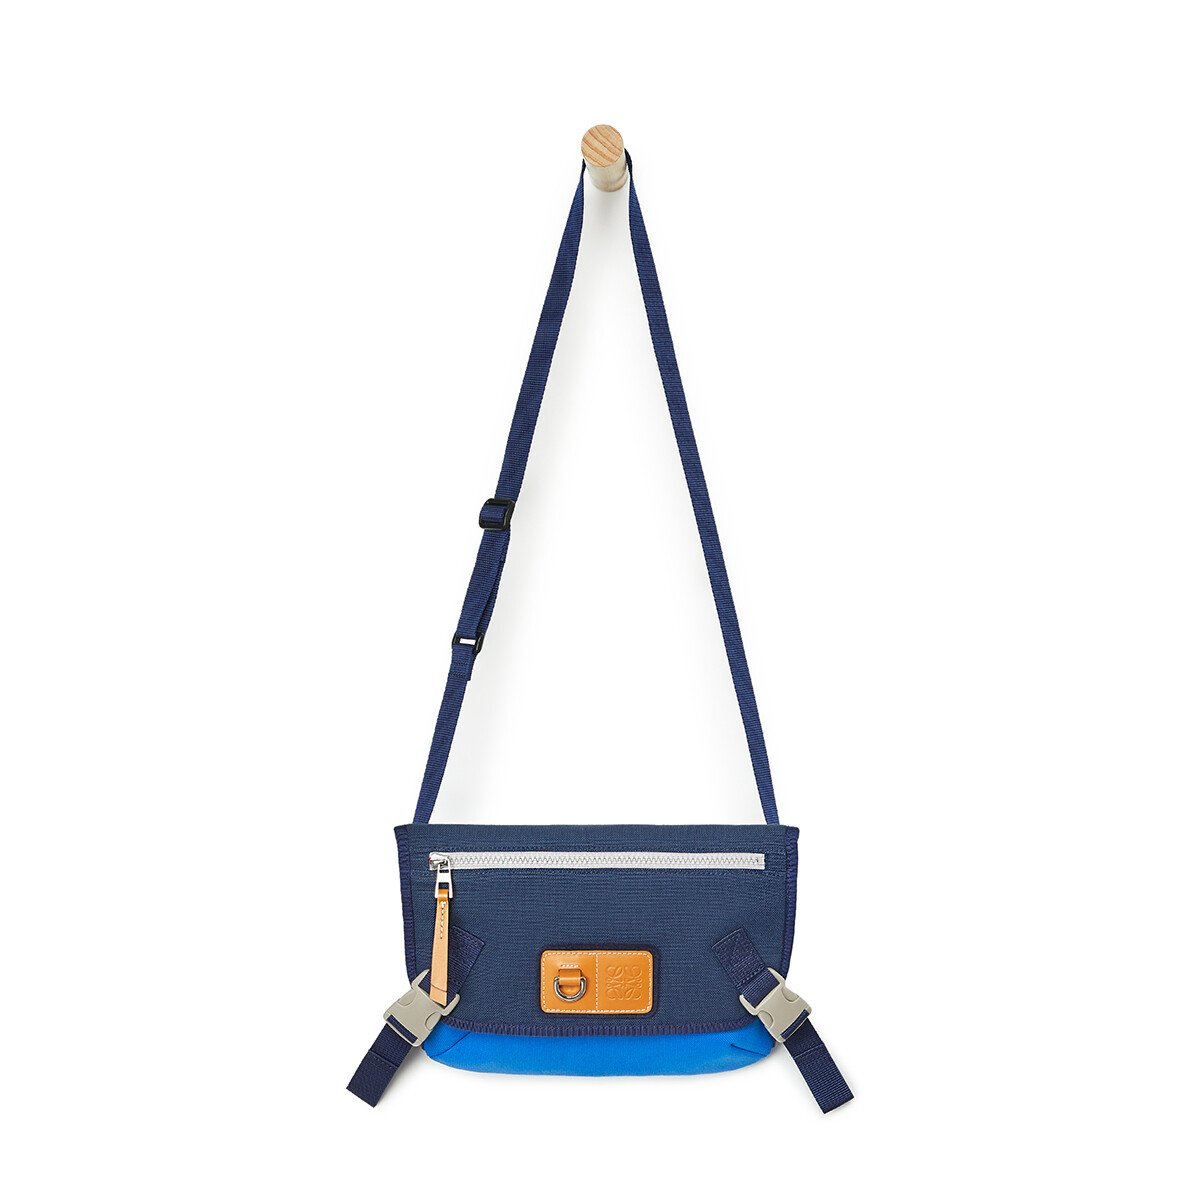 LOEWE Eye/Loewe/Nature Messenger Small Bag Electric Blue/Navy Blue front